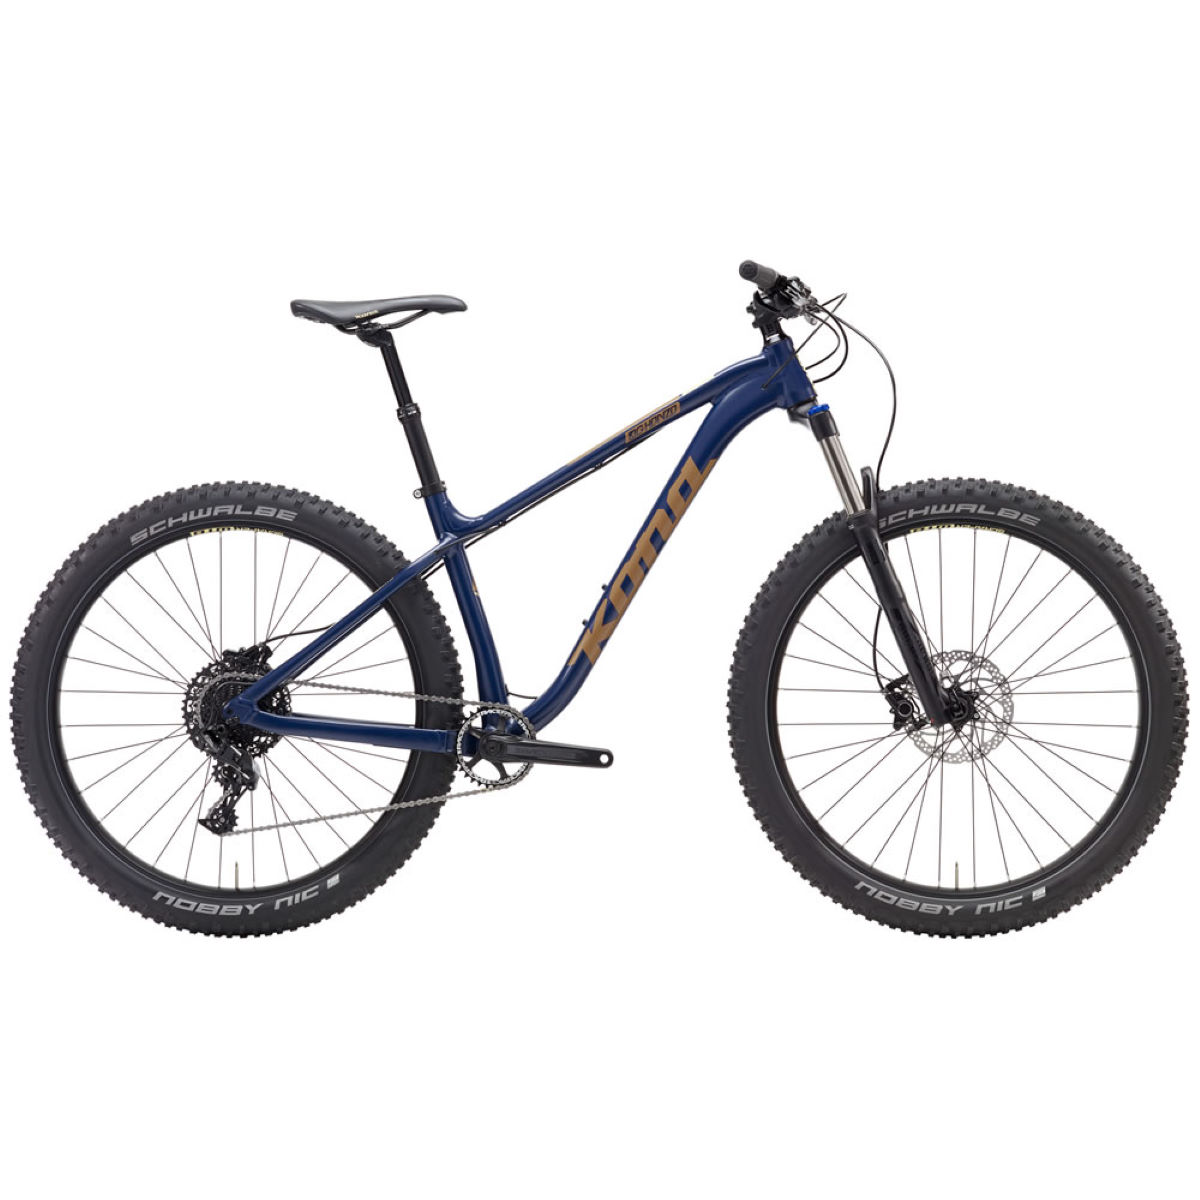 Kona Big Honzo DR (2017) Mountain Bike   Hard Tail Mountain Bikes